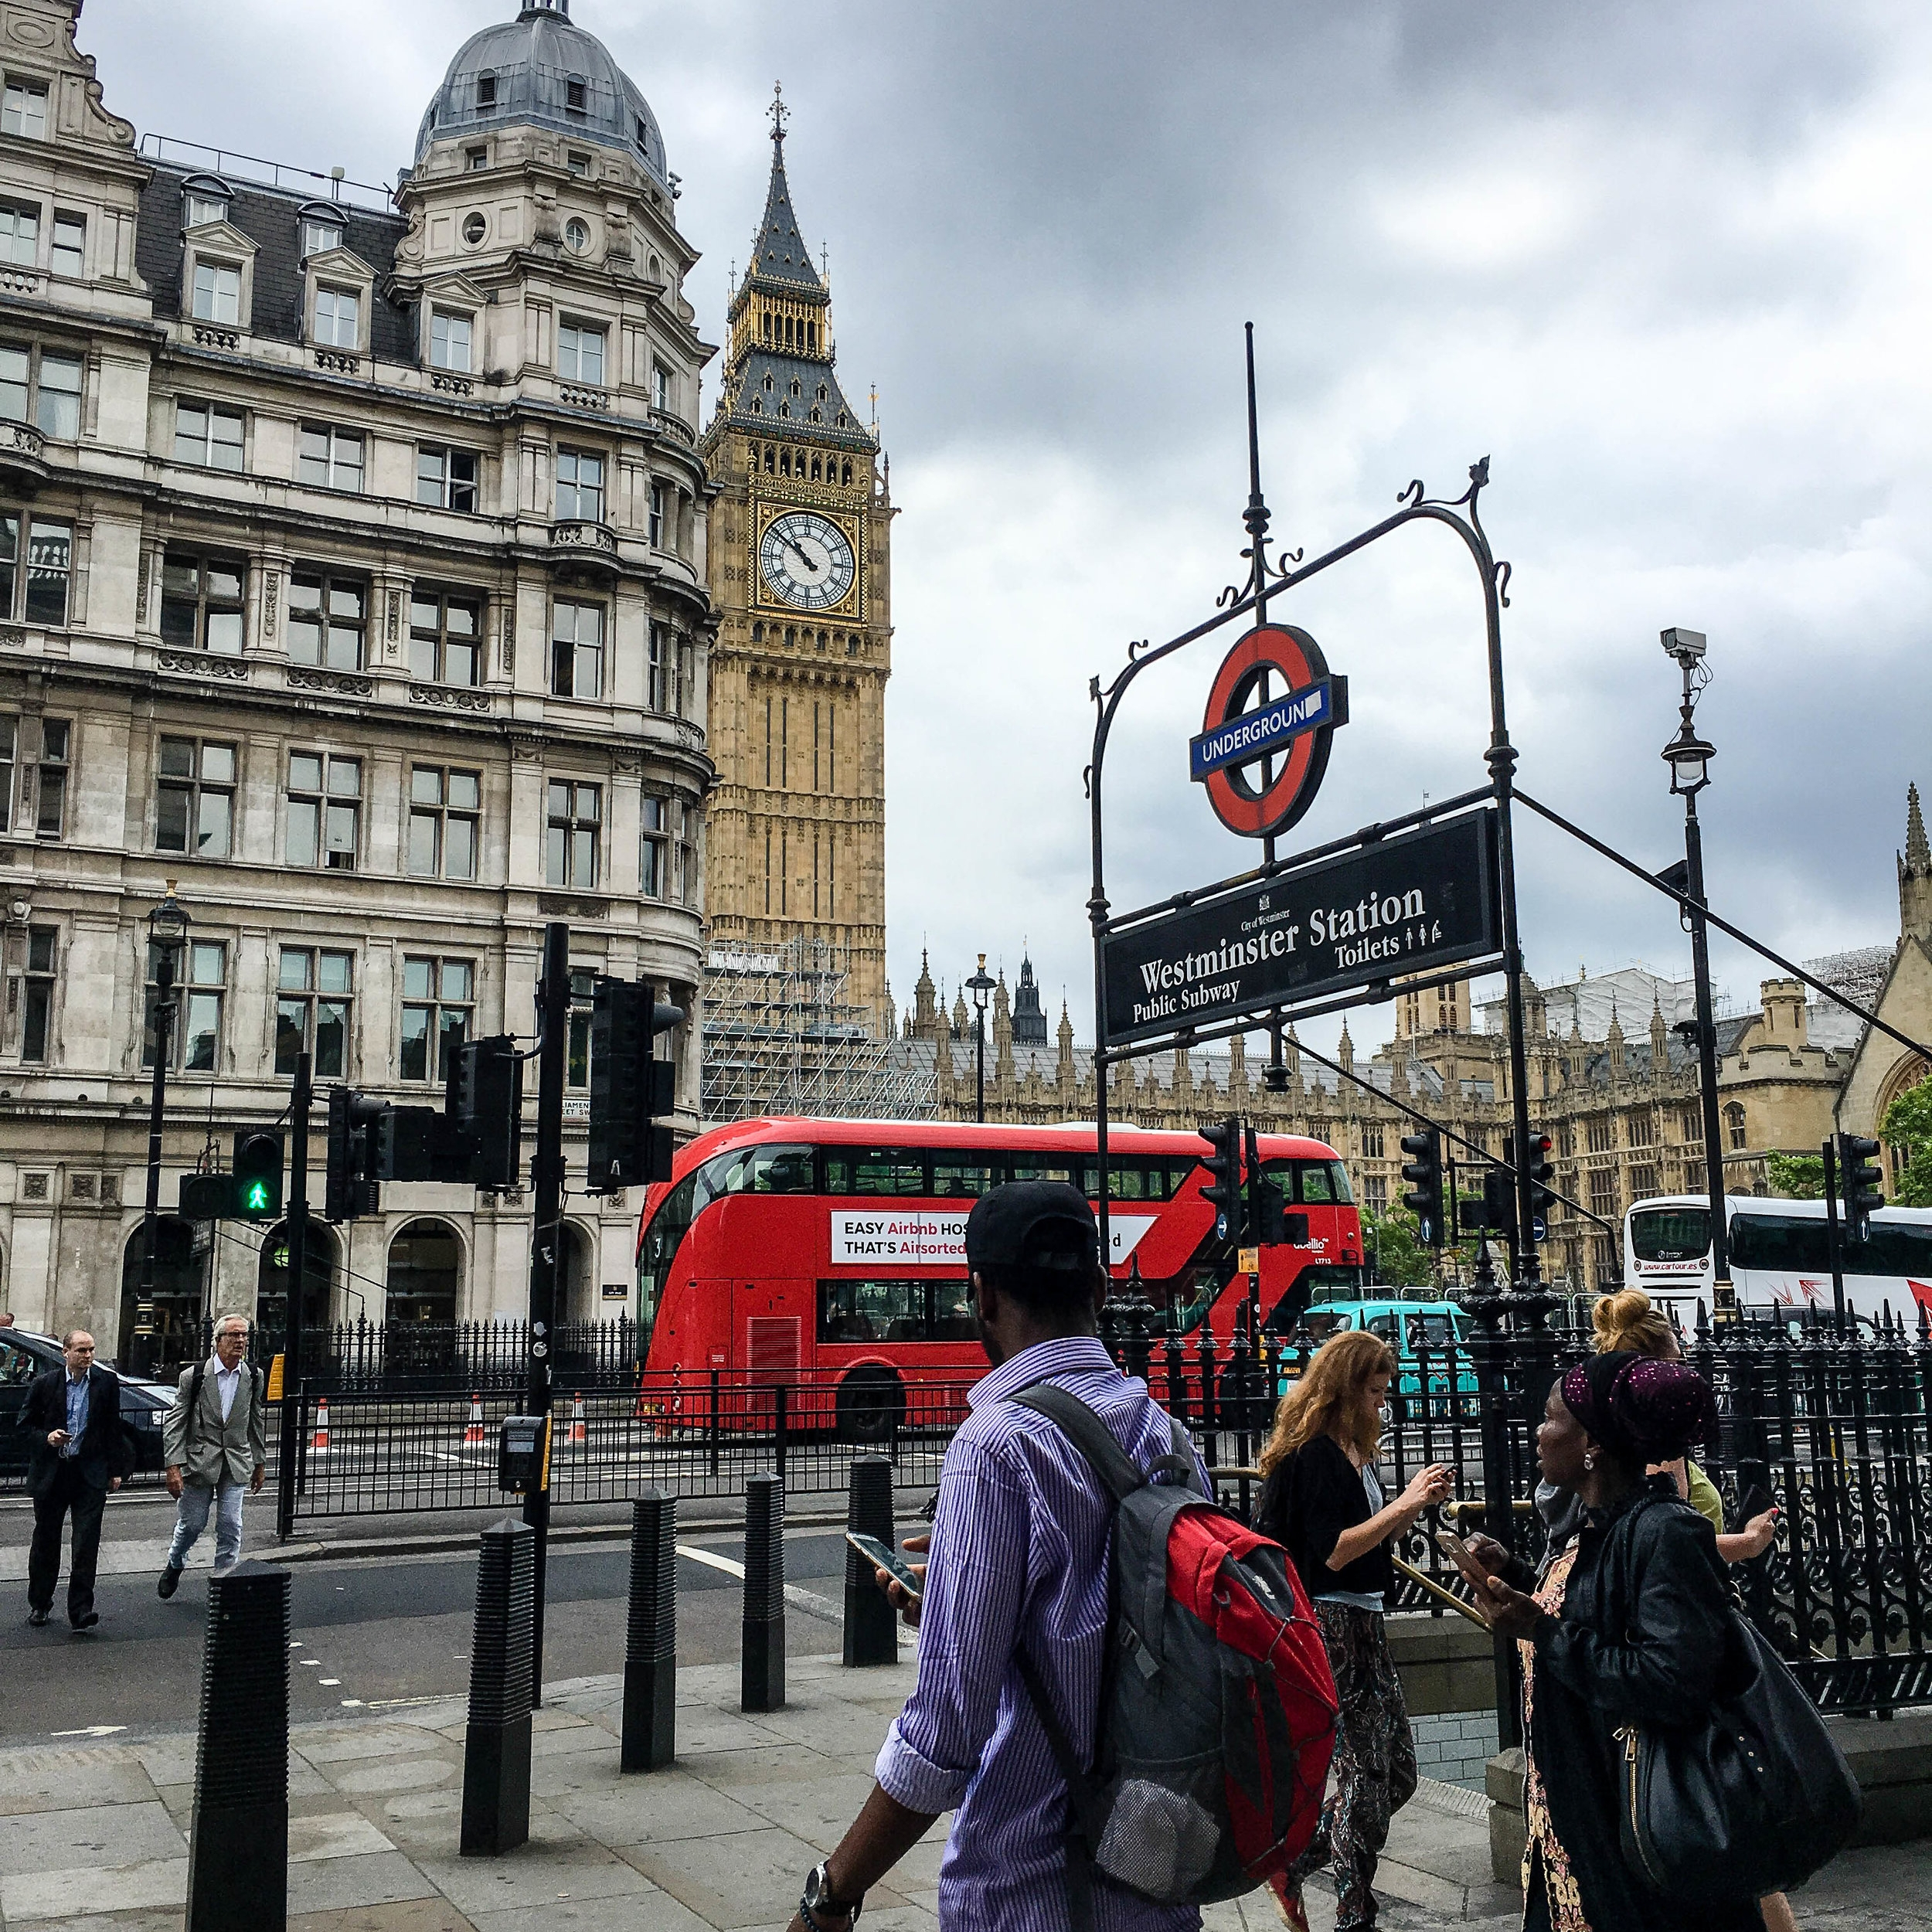 Big ben, Westminister subway station and red double decker buses in London. This landmark can be seeing during a long layover in London (UK). Sightseeing in 8 hour layover in London